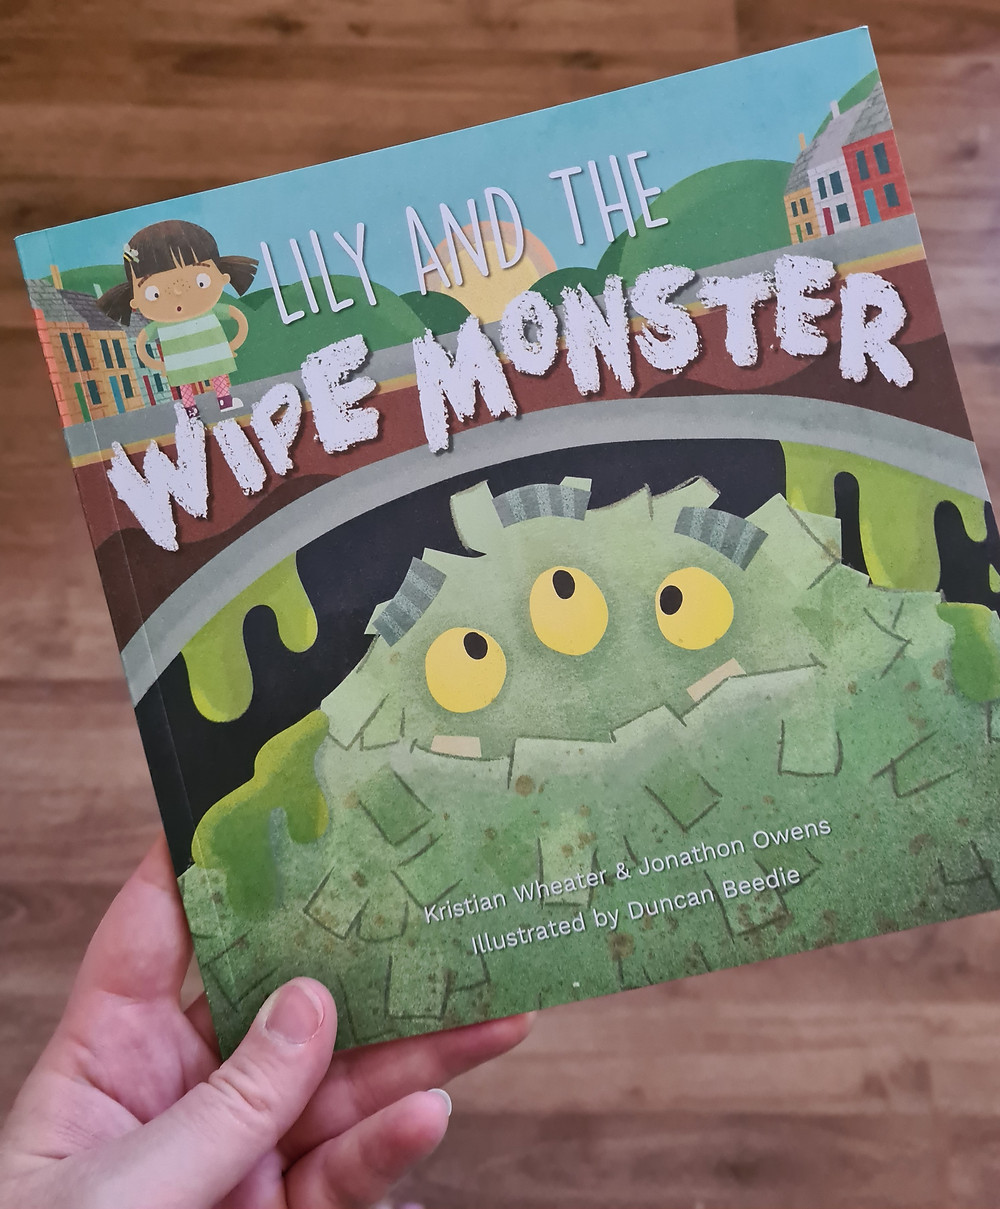 Cover of Lily and the wipe monster